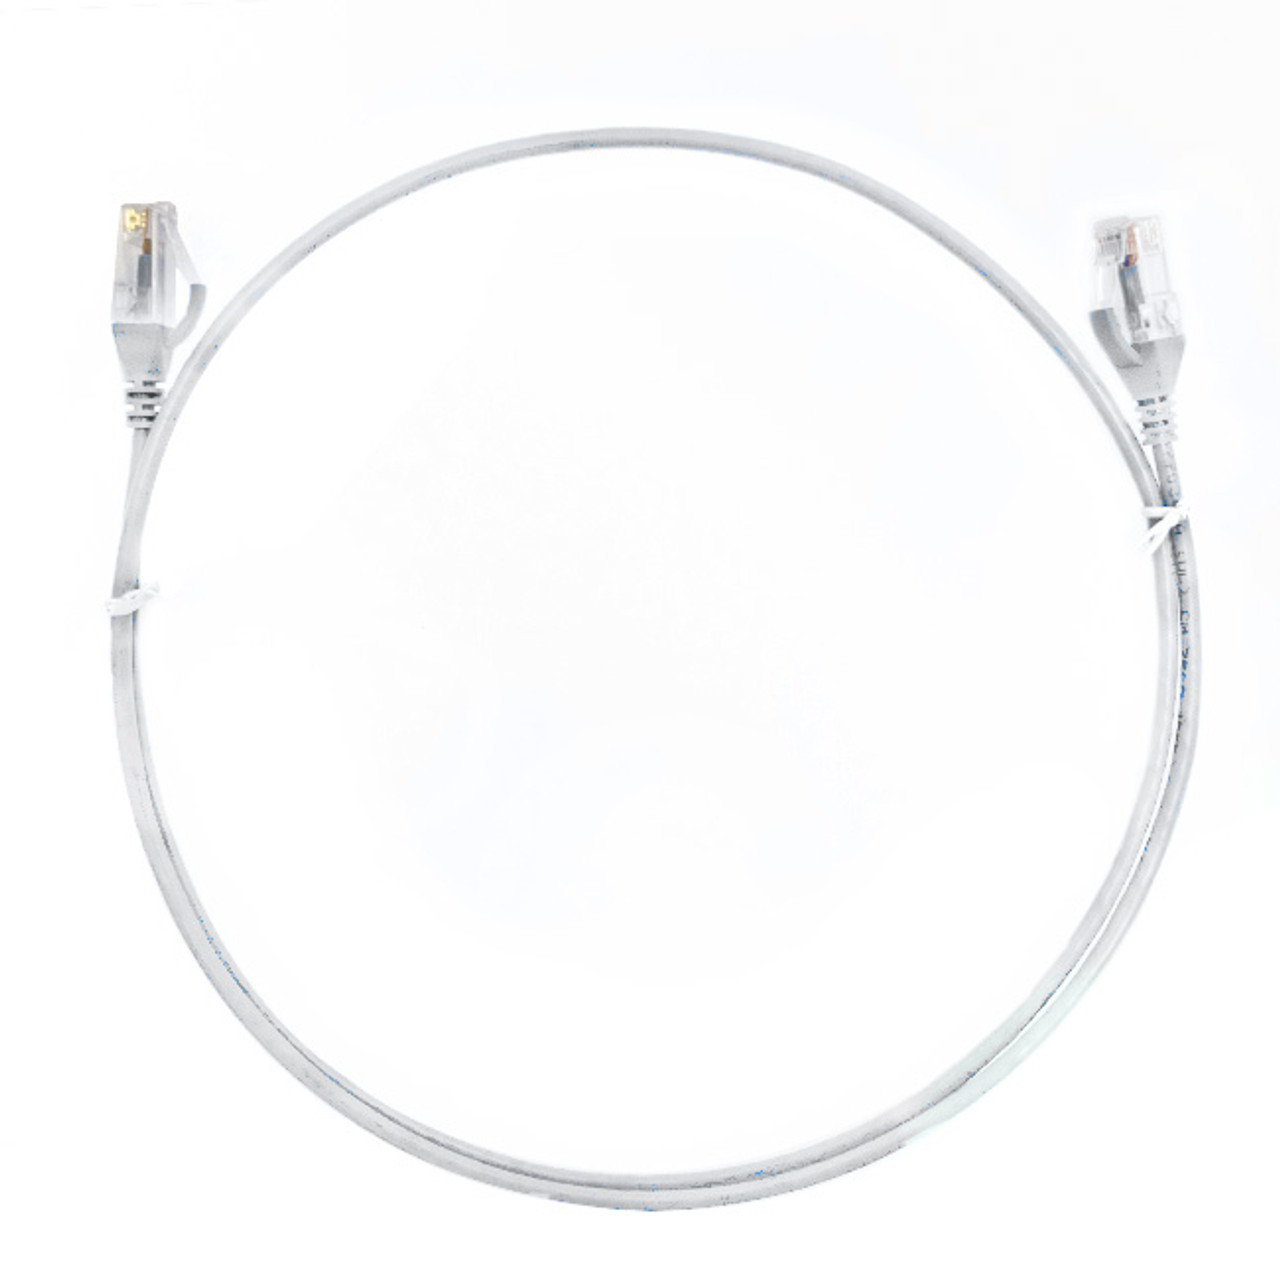 Image for 0.15m Cat 6 RJ45 RJ45 Ultra Thin LSZH Network Cables  : White CX Computer Superstore